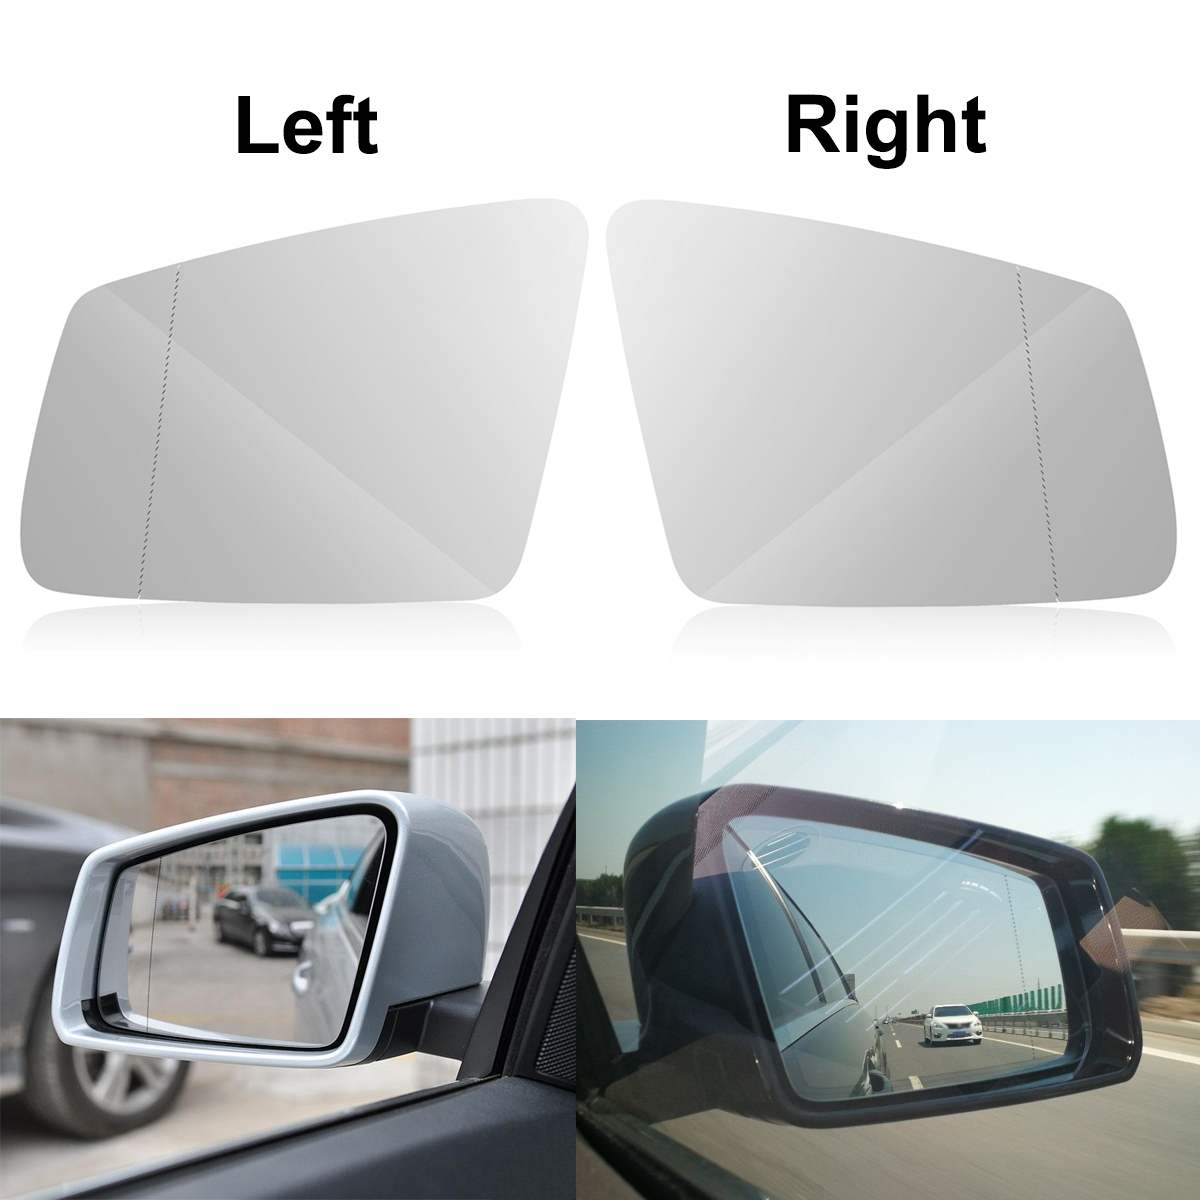 A6 RIGHT SIDE Wing Mirror Glass Wide Angle 2011 to 2018